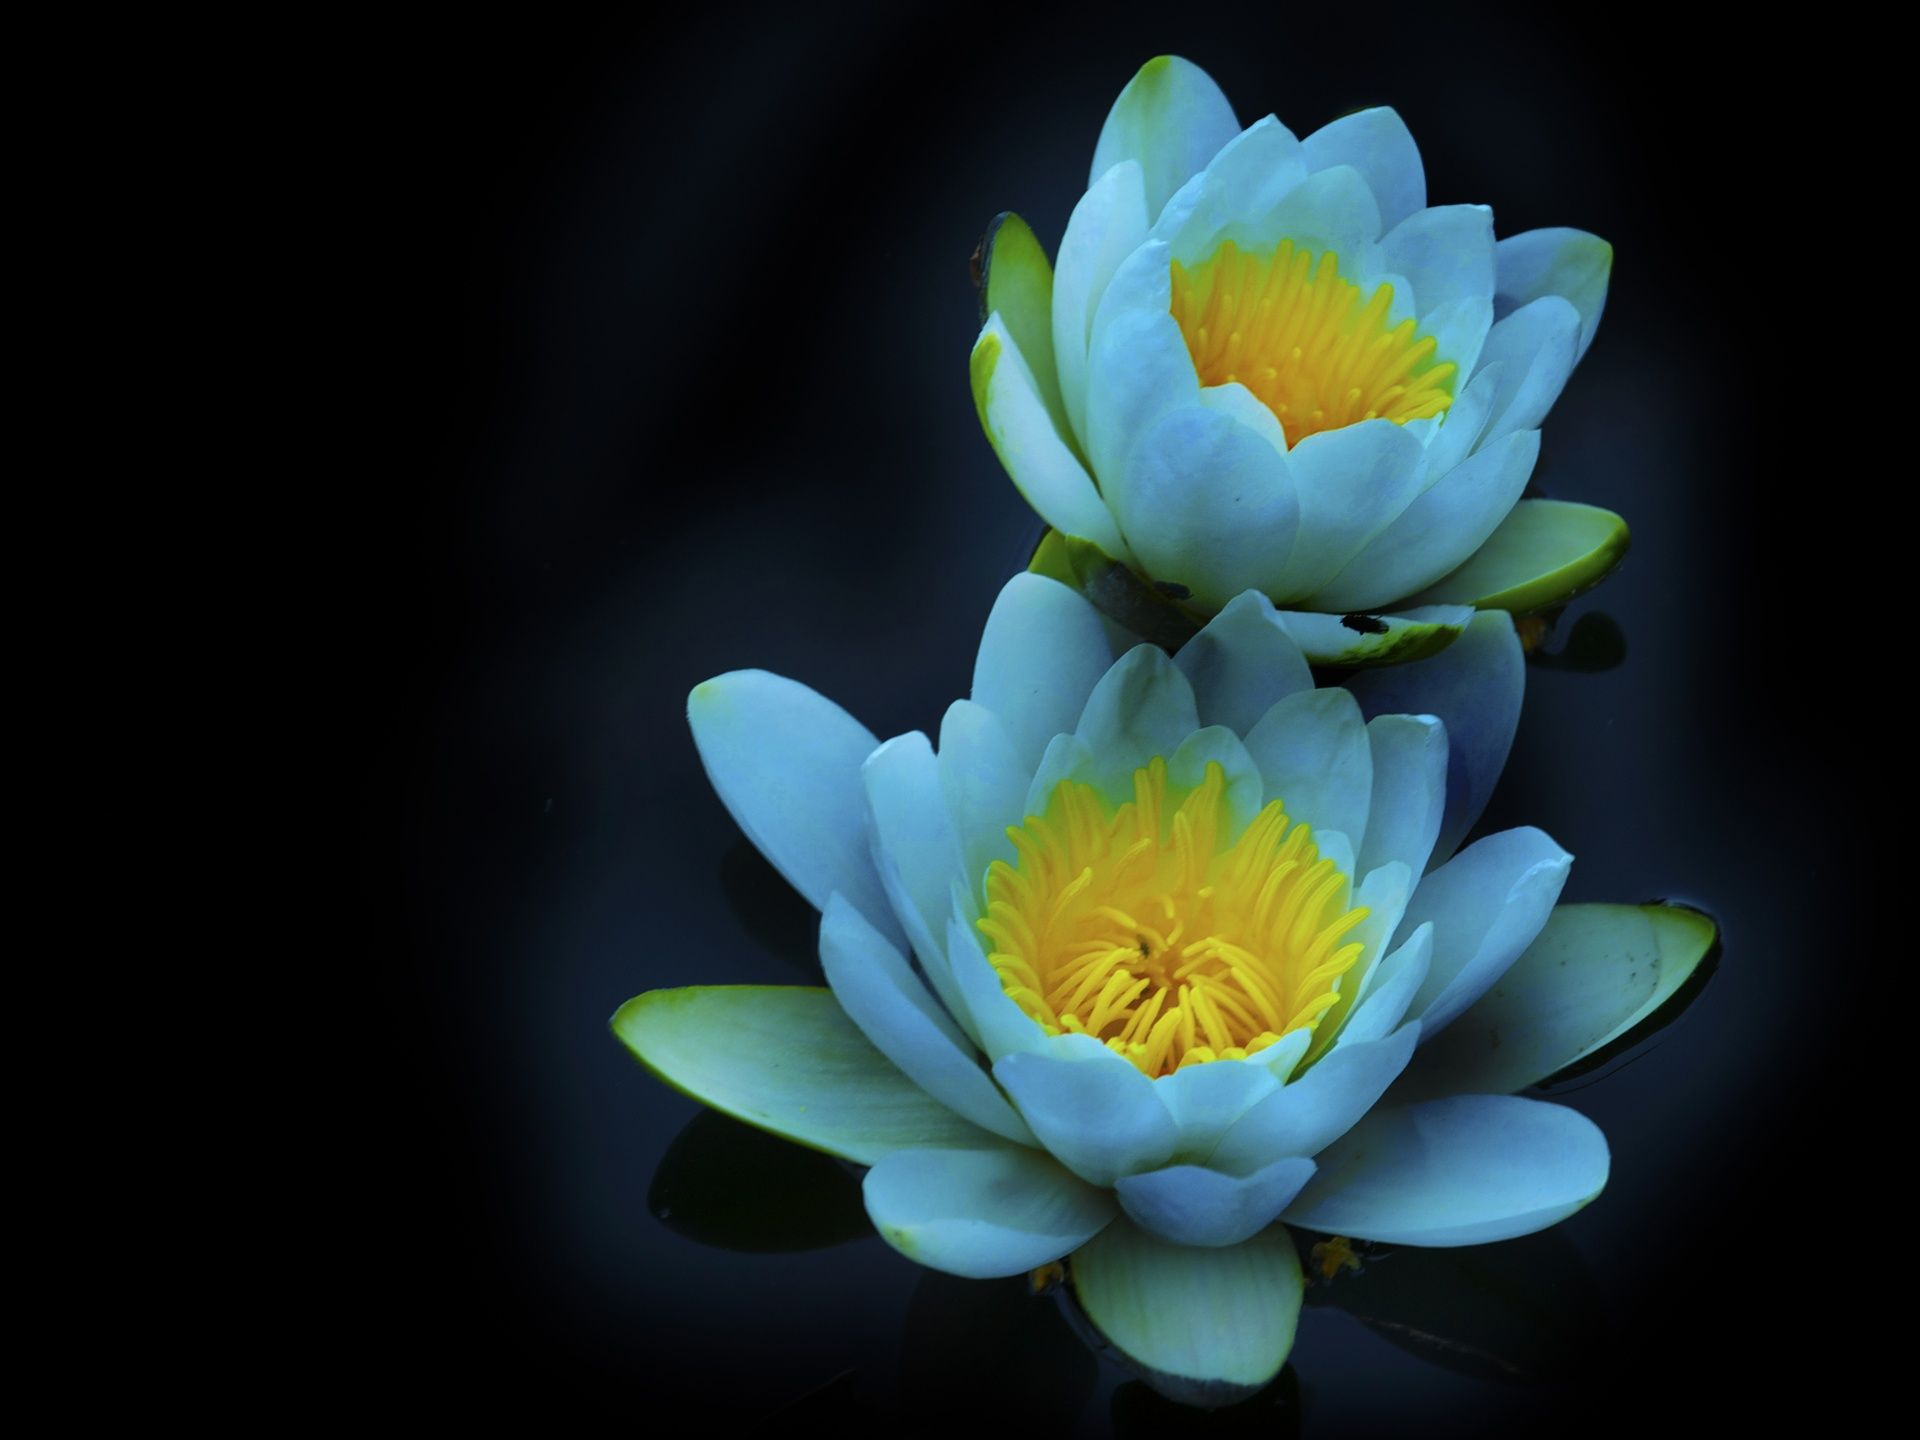 Water Lily 1920x1440 Wallpaper Water Lily Candle Water Lilies July Birth Flower